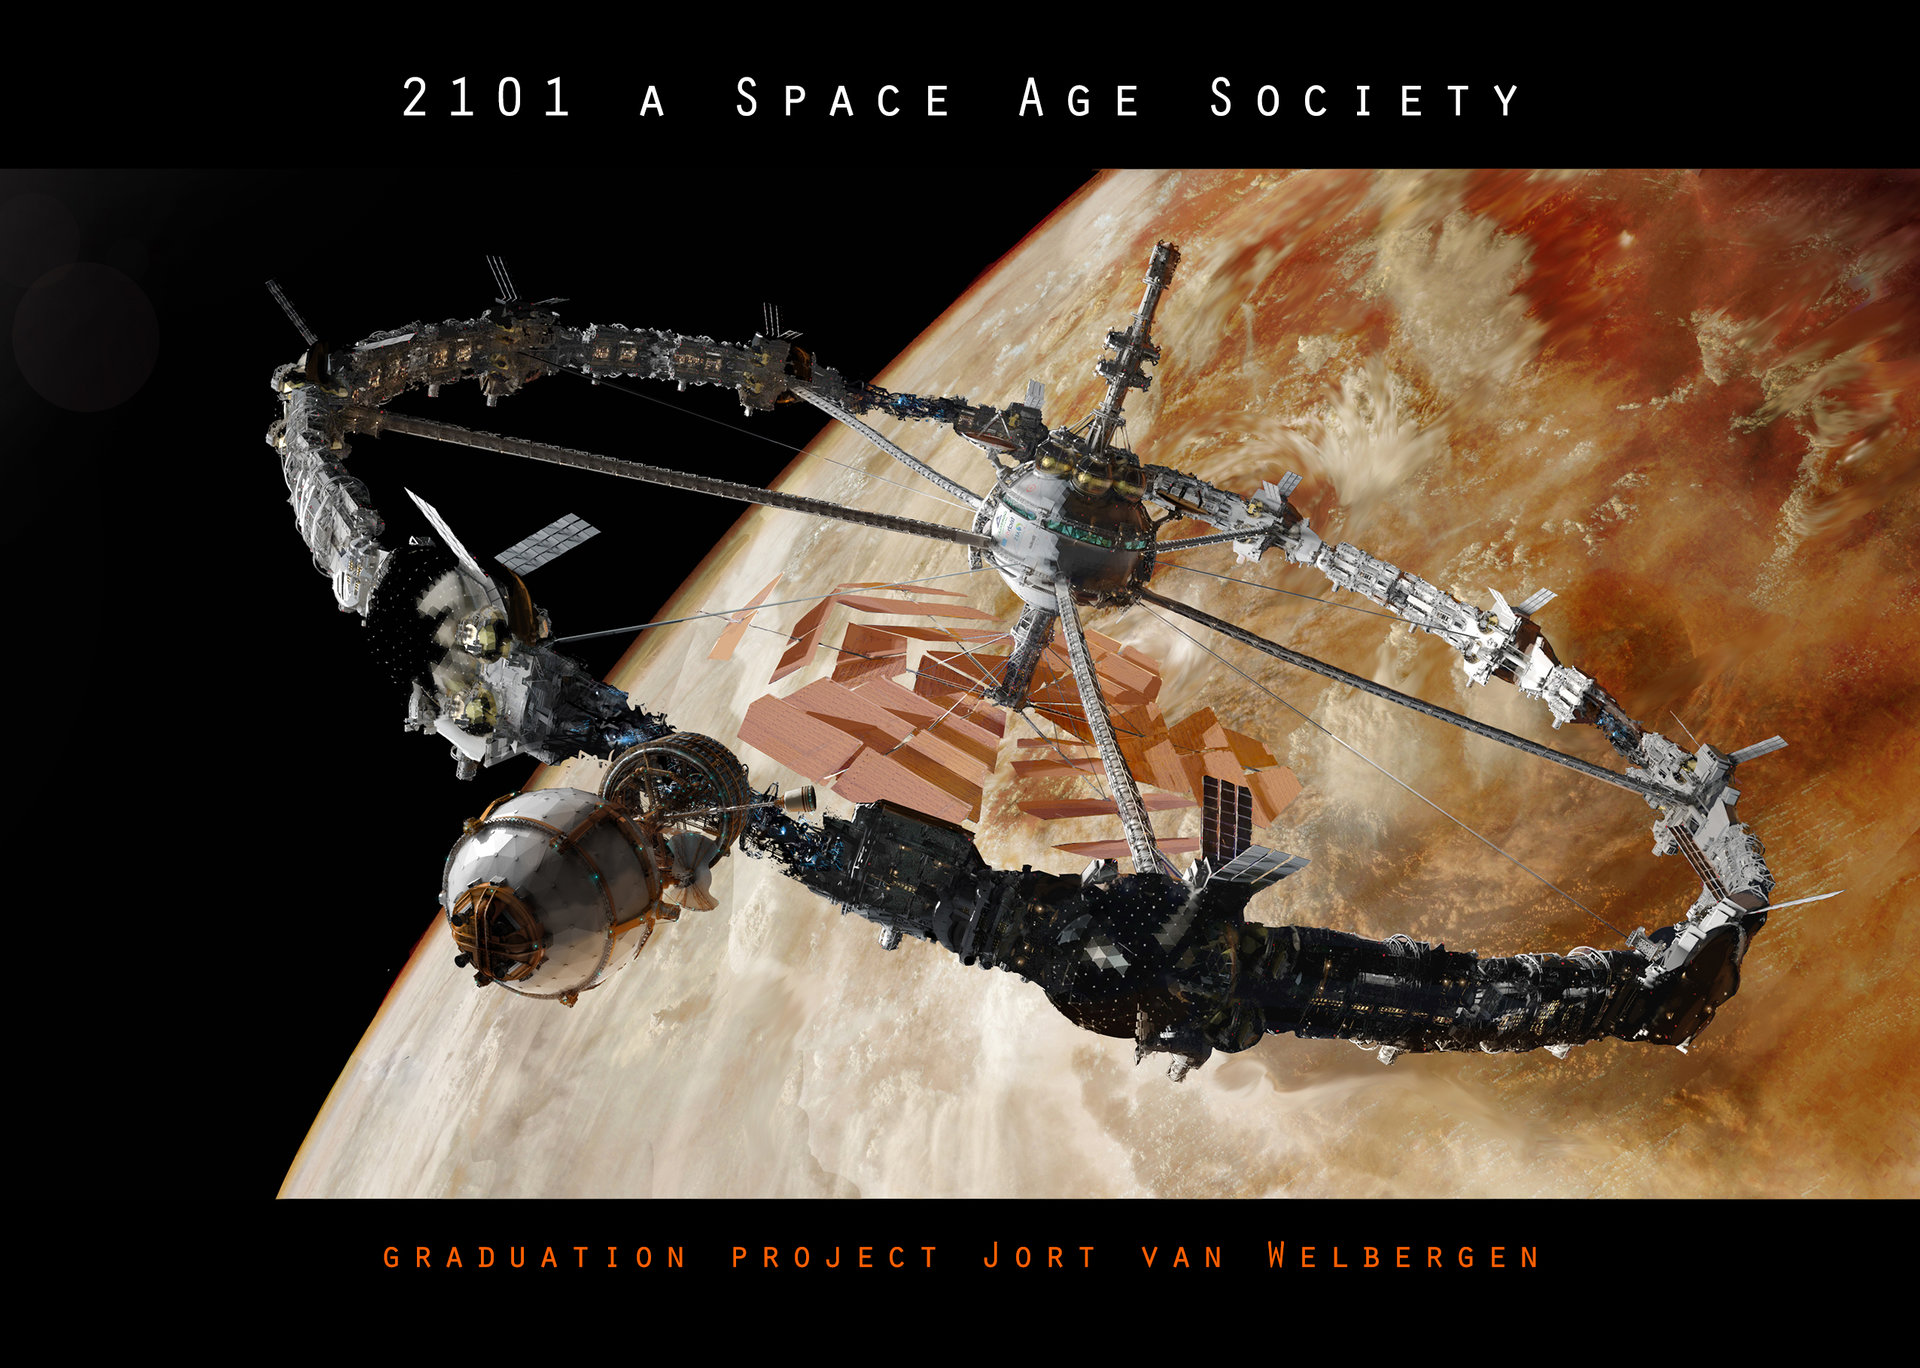 2101 a space age society flyer